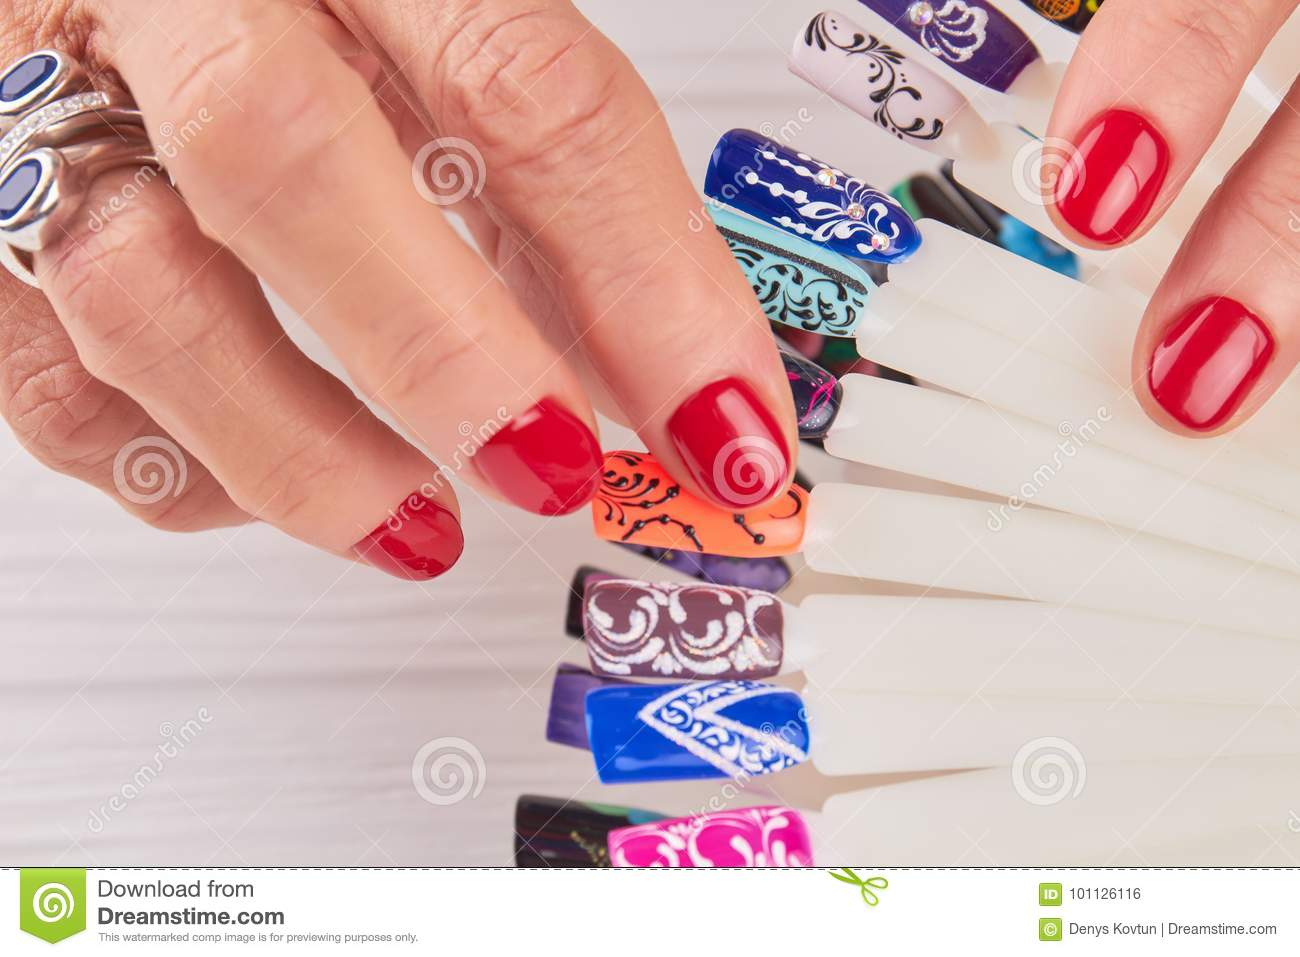 Manicured Hands Nail Art Samples Close Up Stock Photo Image Of